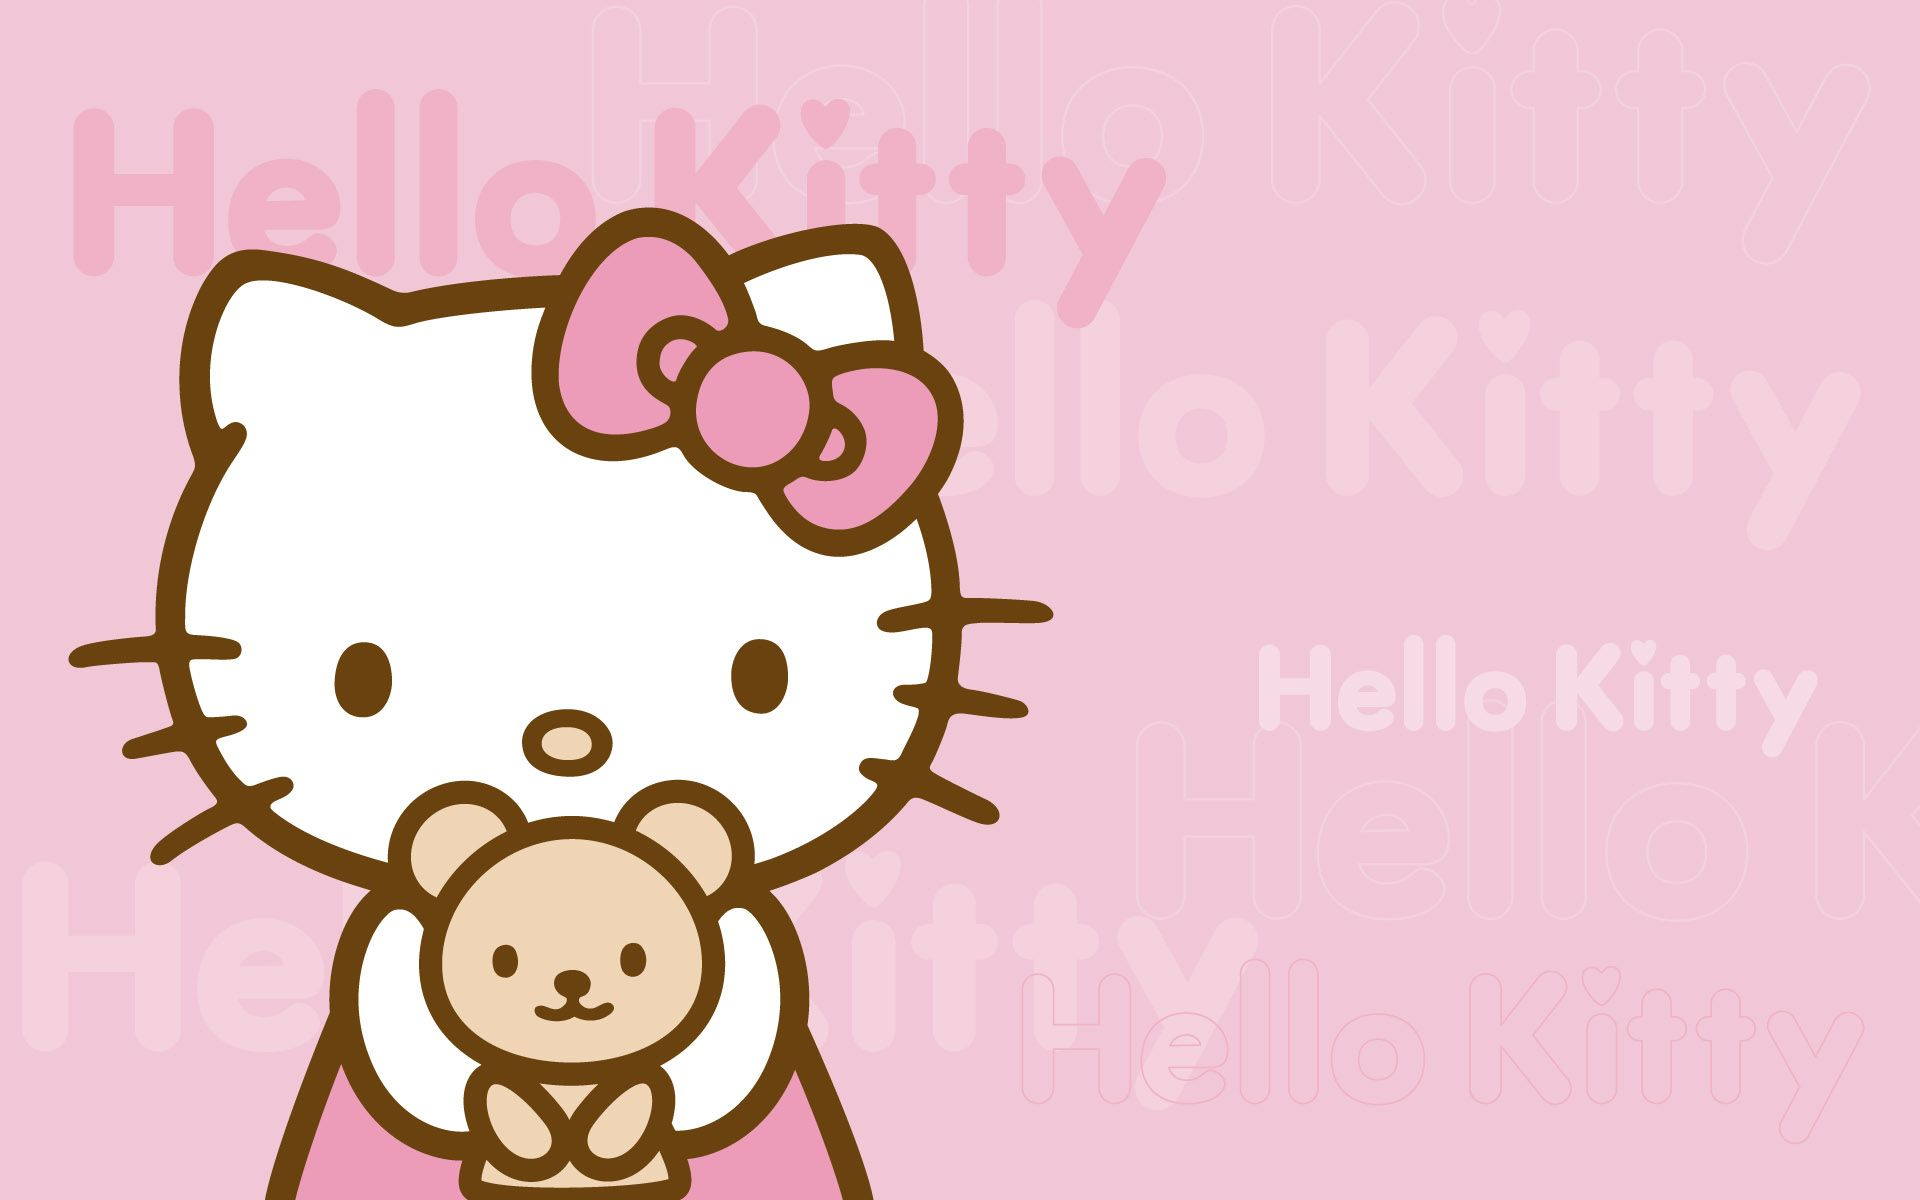 Hello Kitty PC Wallpapers - Top Free Hello Kitty PC Backgrounds